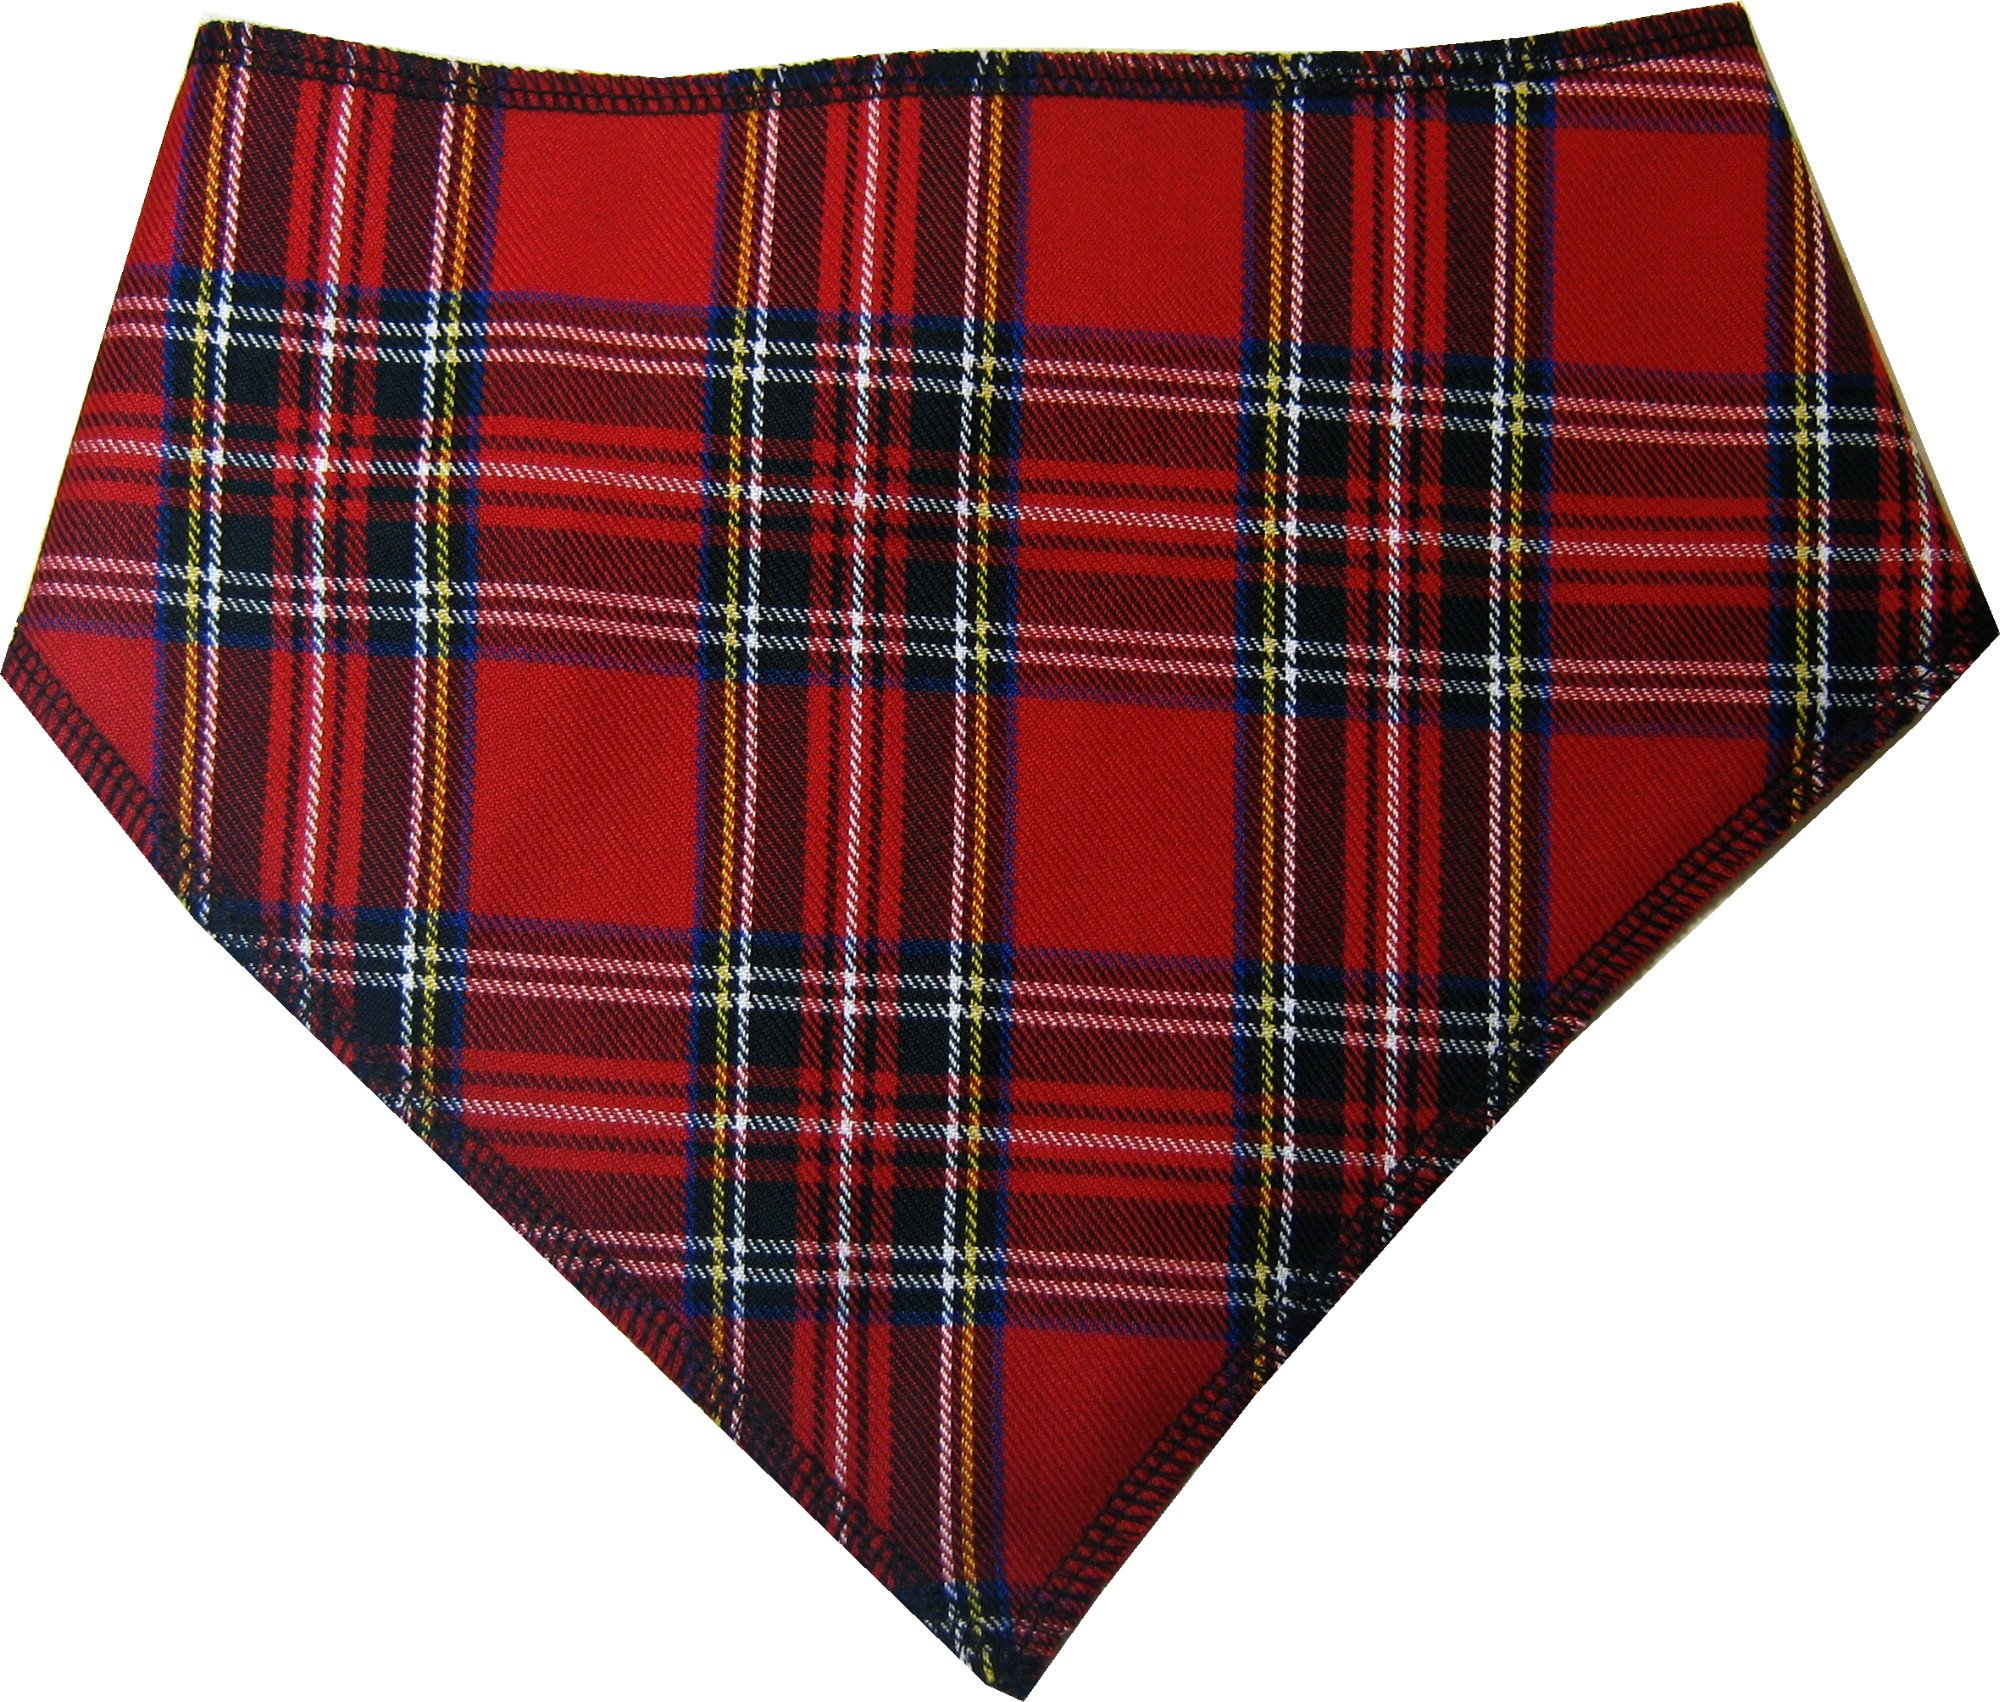 Spoilt Rotten Pet (S4) RED Royal Stewart TARTAN Dog Bandana. Extra Large Size Generally Fits Rottweilers and St Bernard Sized Dogs. Neck Size 23″ to 28″ Gorgeous Range of Patterns & Colour.